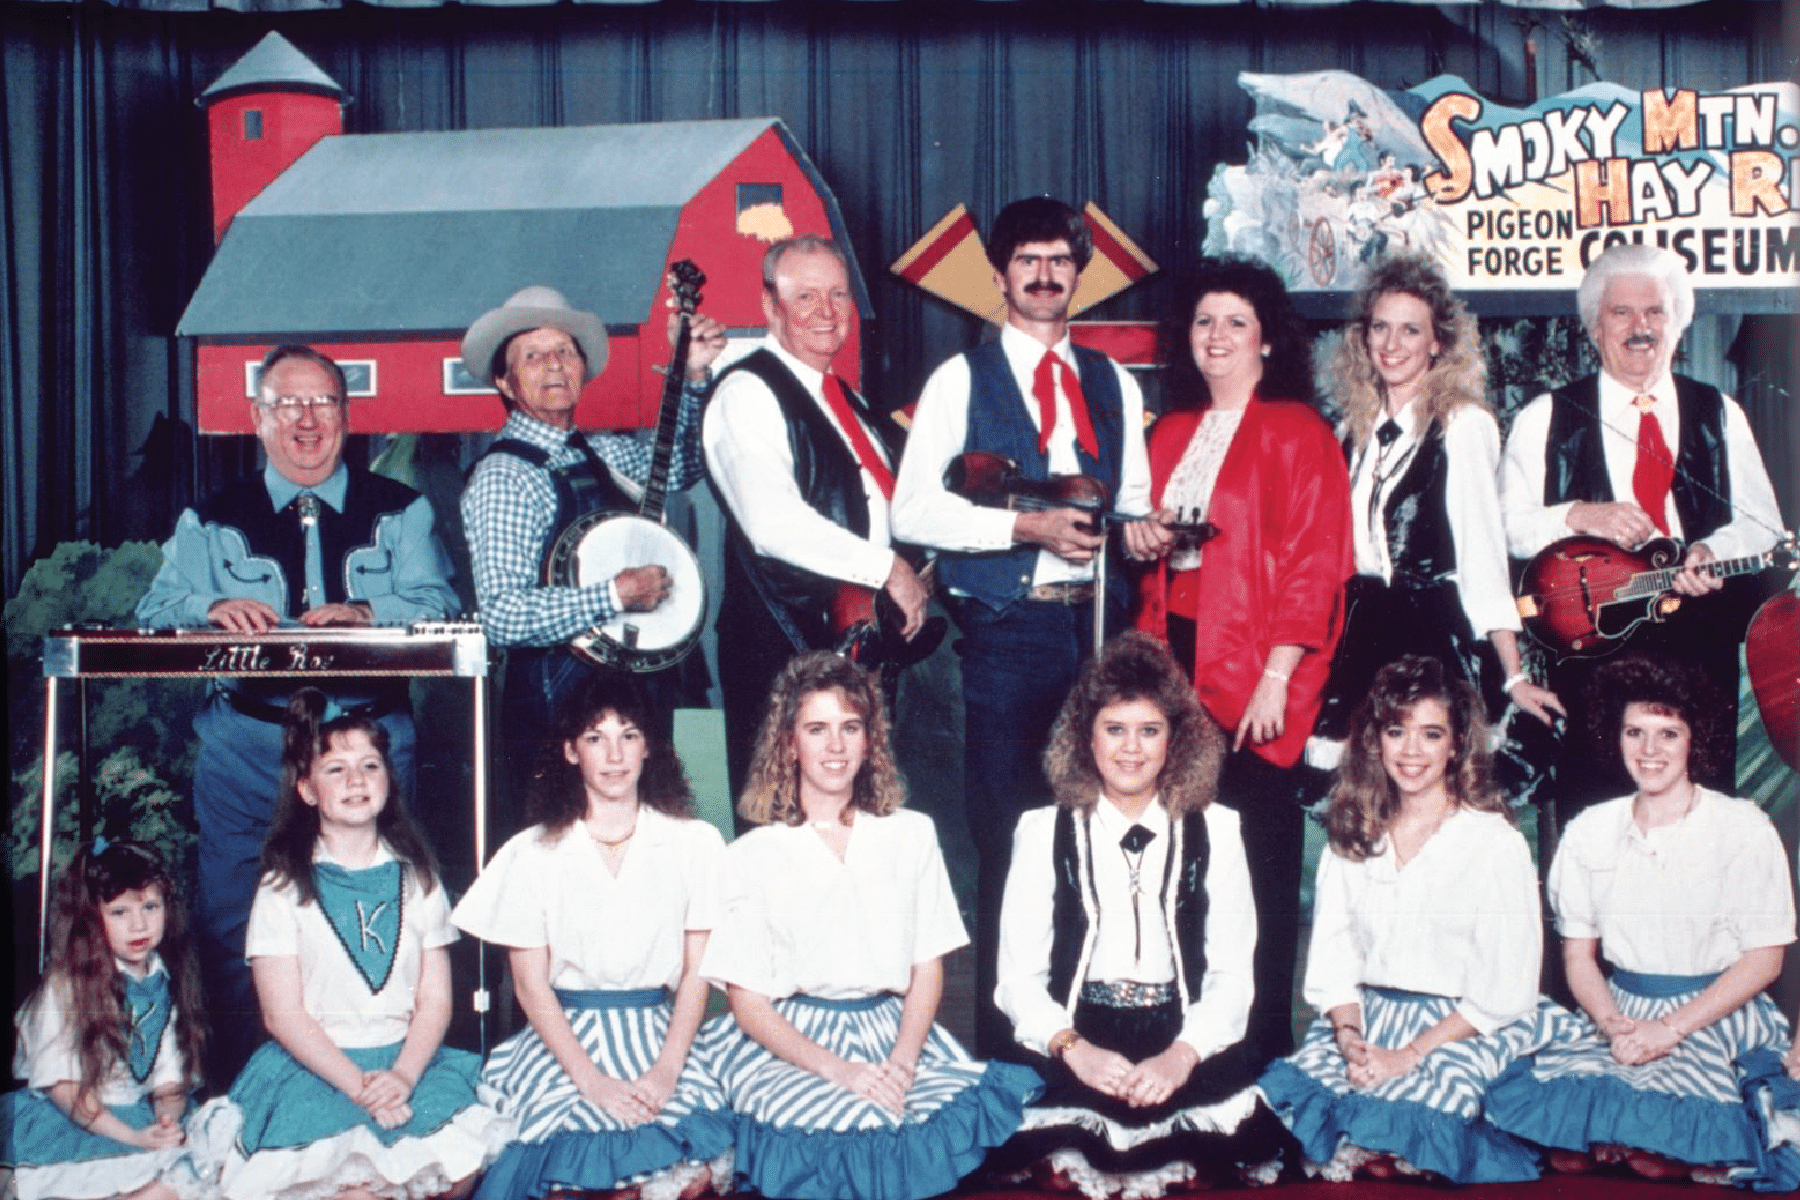 Smoky Mountain Hay Ride staff photo in Pigeon Forge.